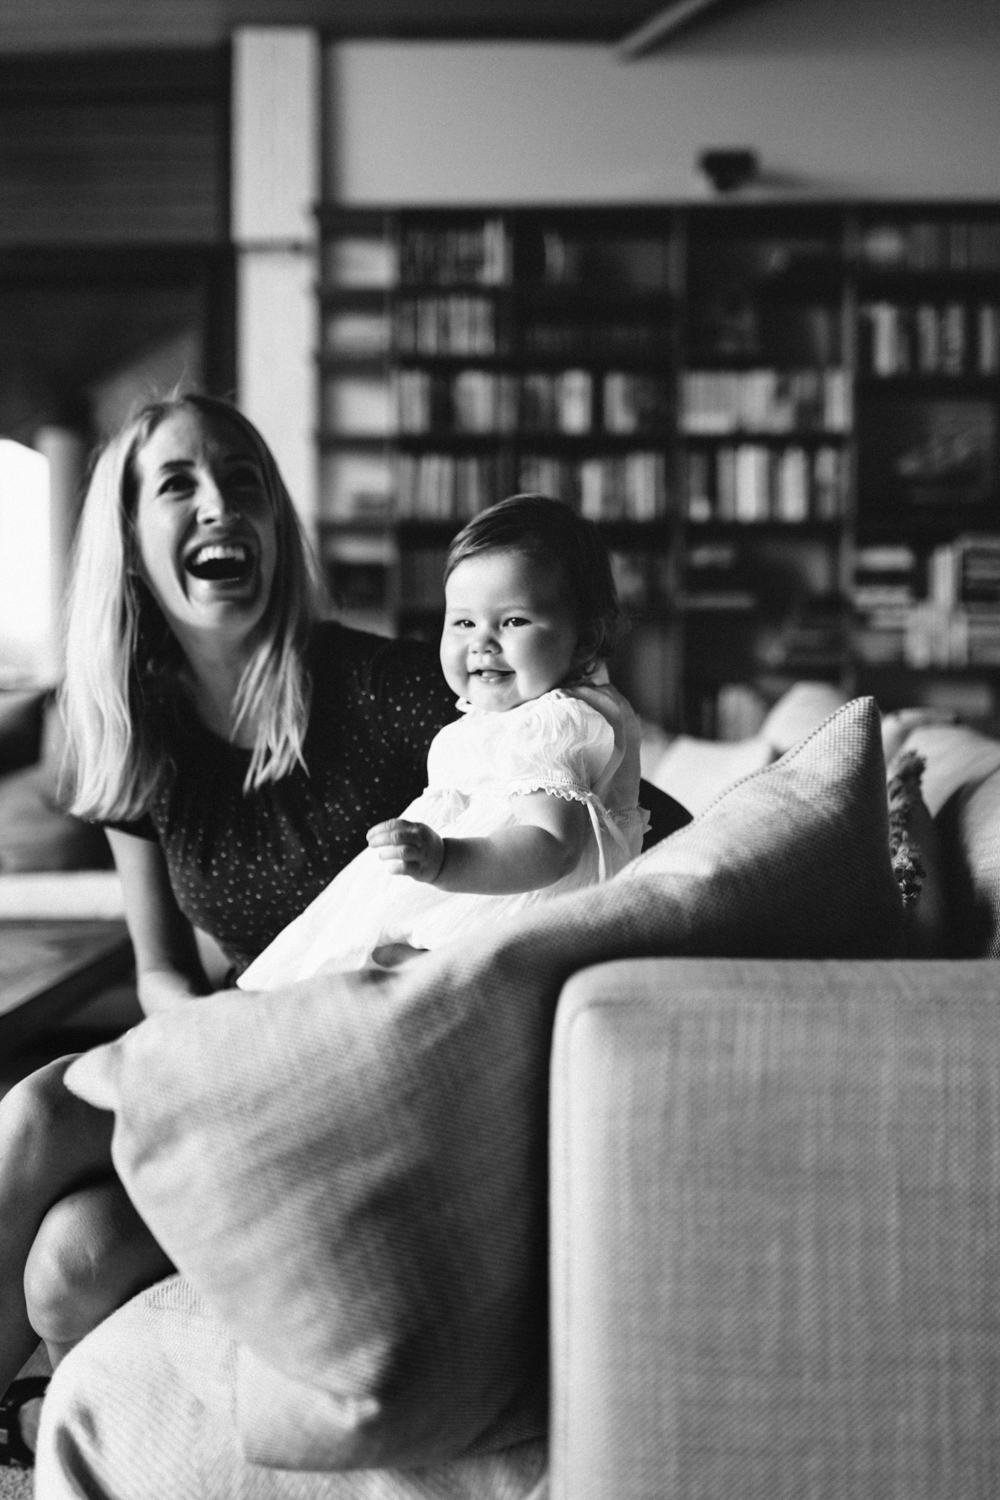 Mum and baby smile naturally during their documentary photography session at home.